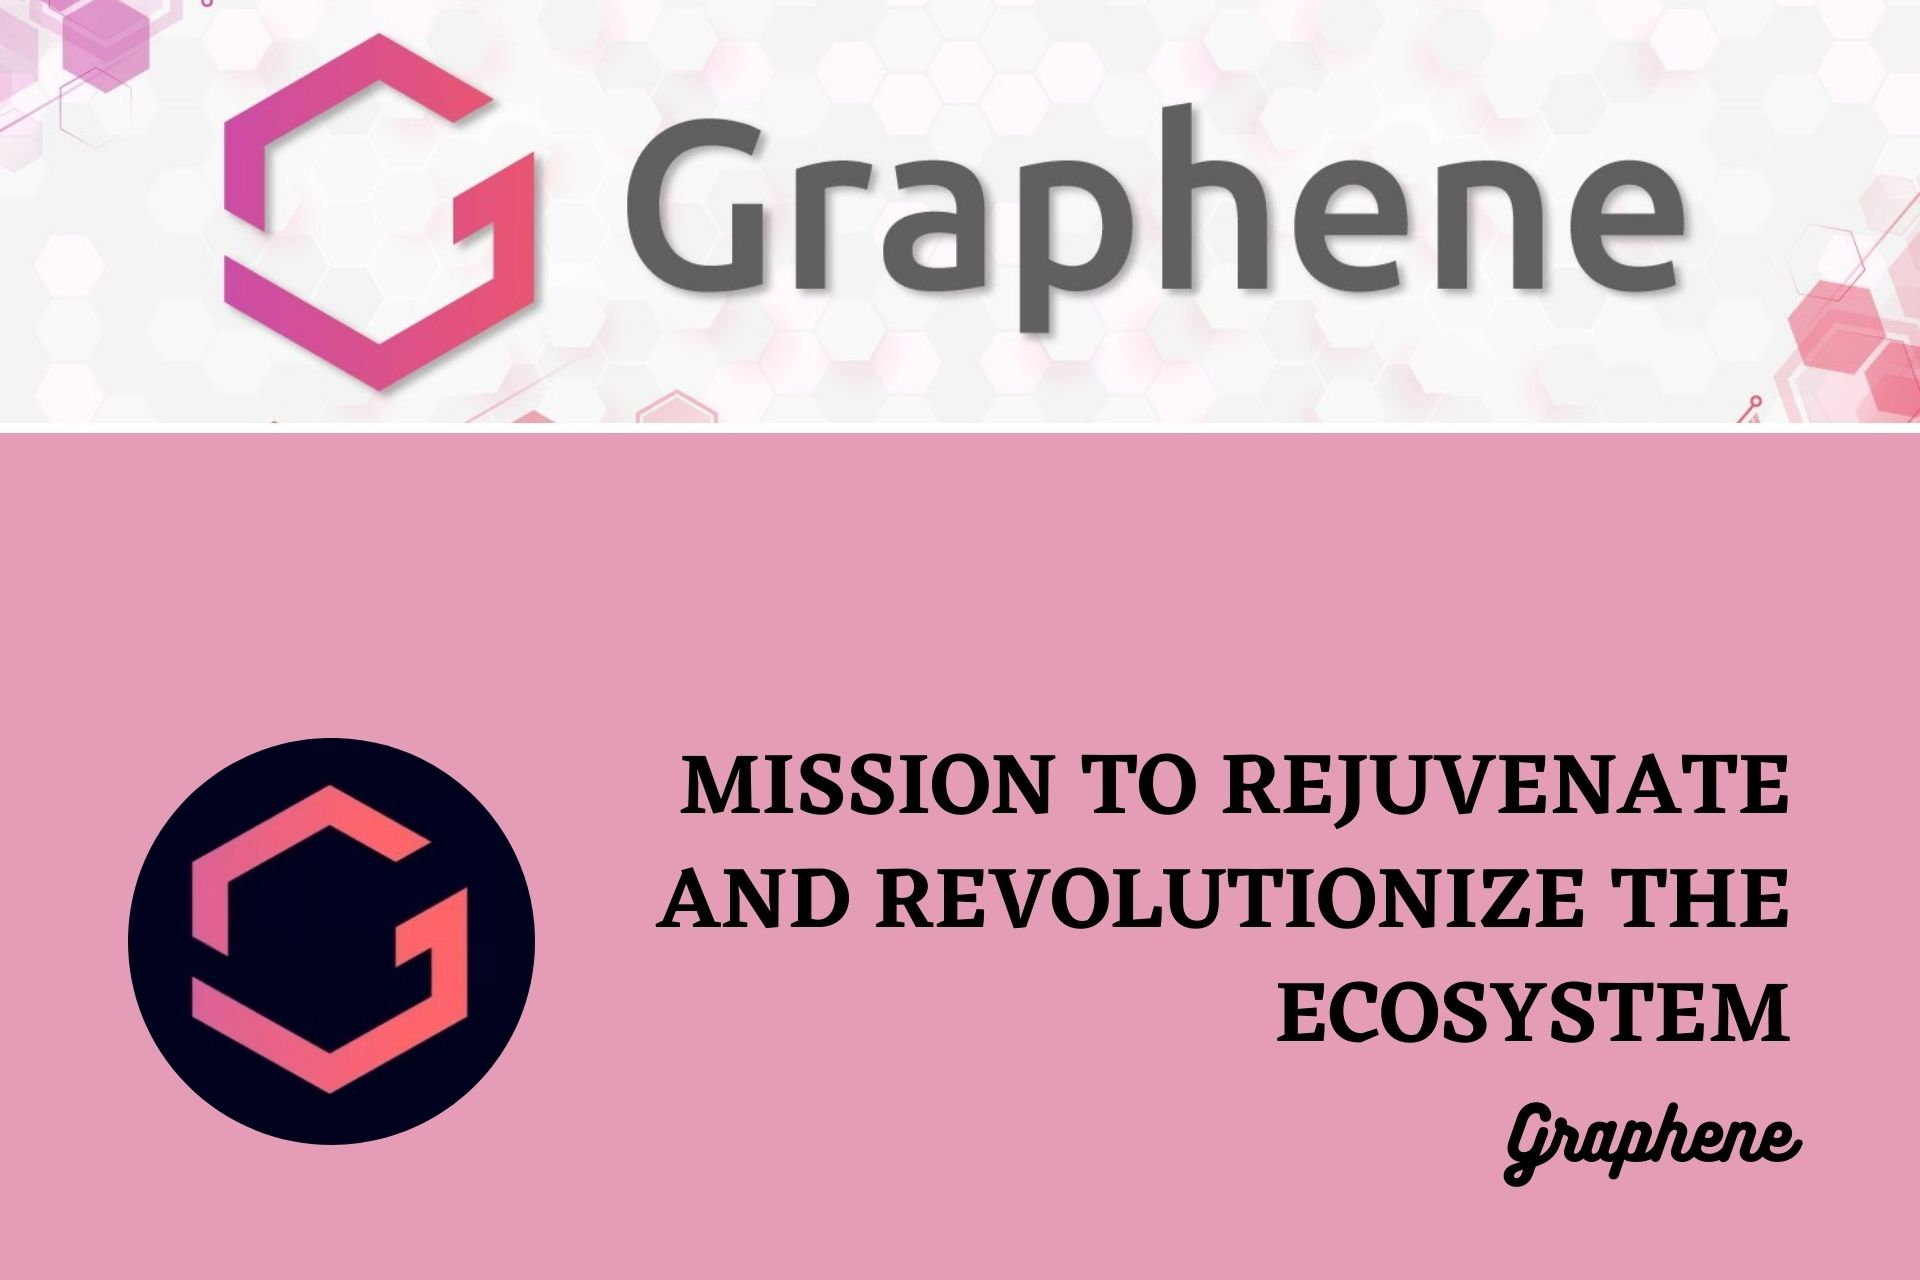 Graphene | A Project With a Mission to Rejuvenate and Revolutionize the Ecosystem